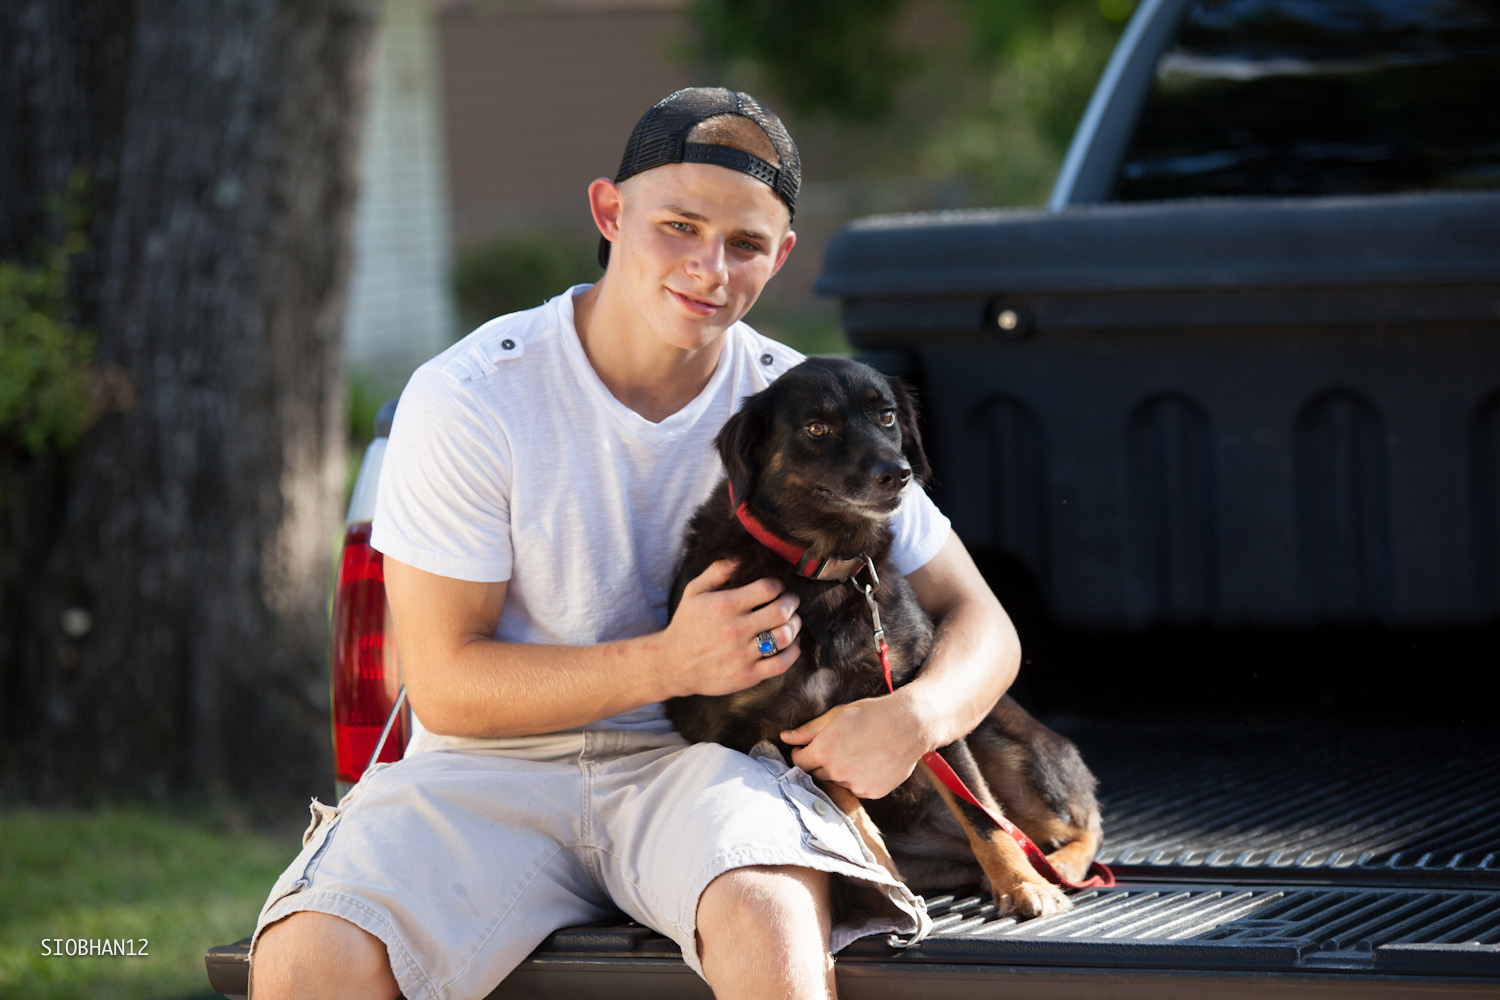 Senior Portrait (Outdoor With Car & Pet) - Guys